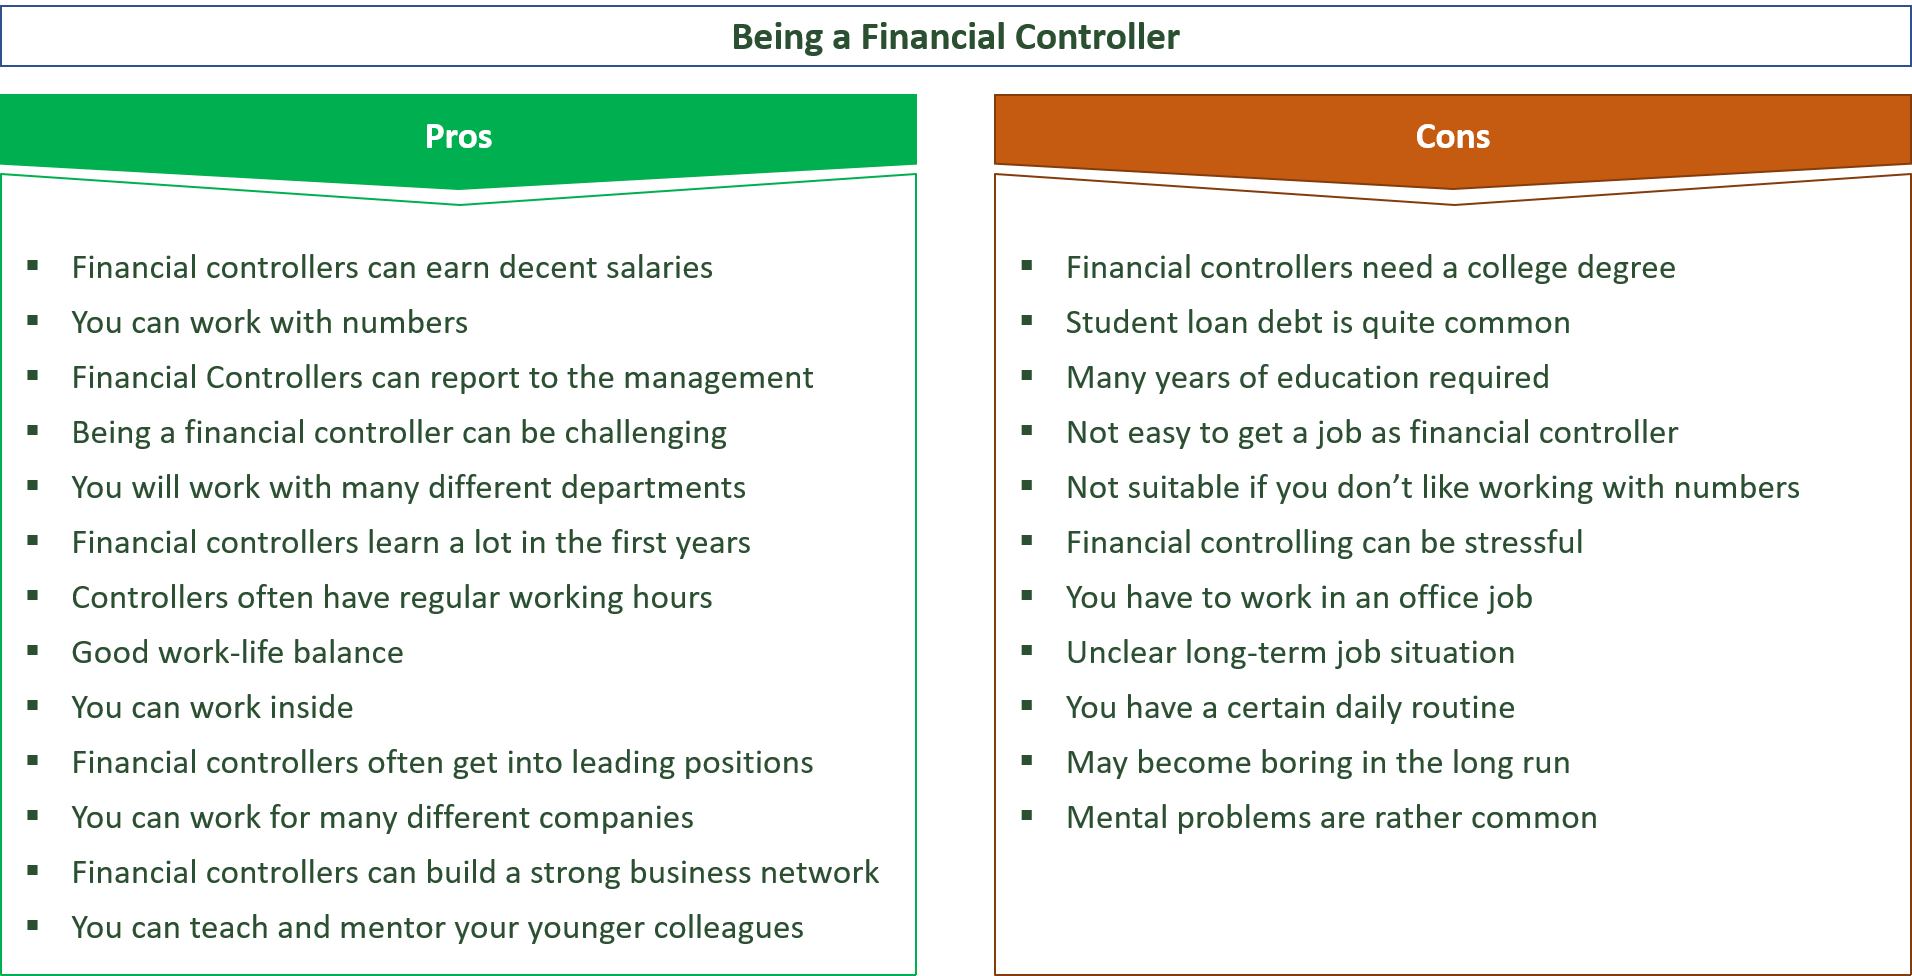 advantages and disadvantages of being a financial controller